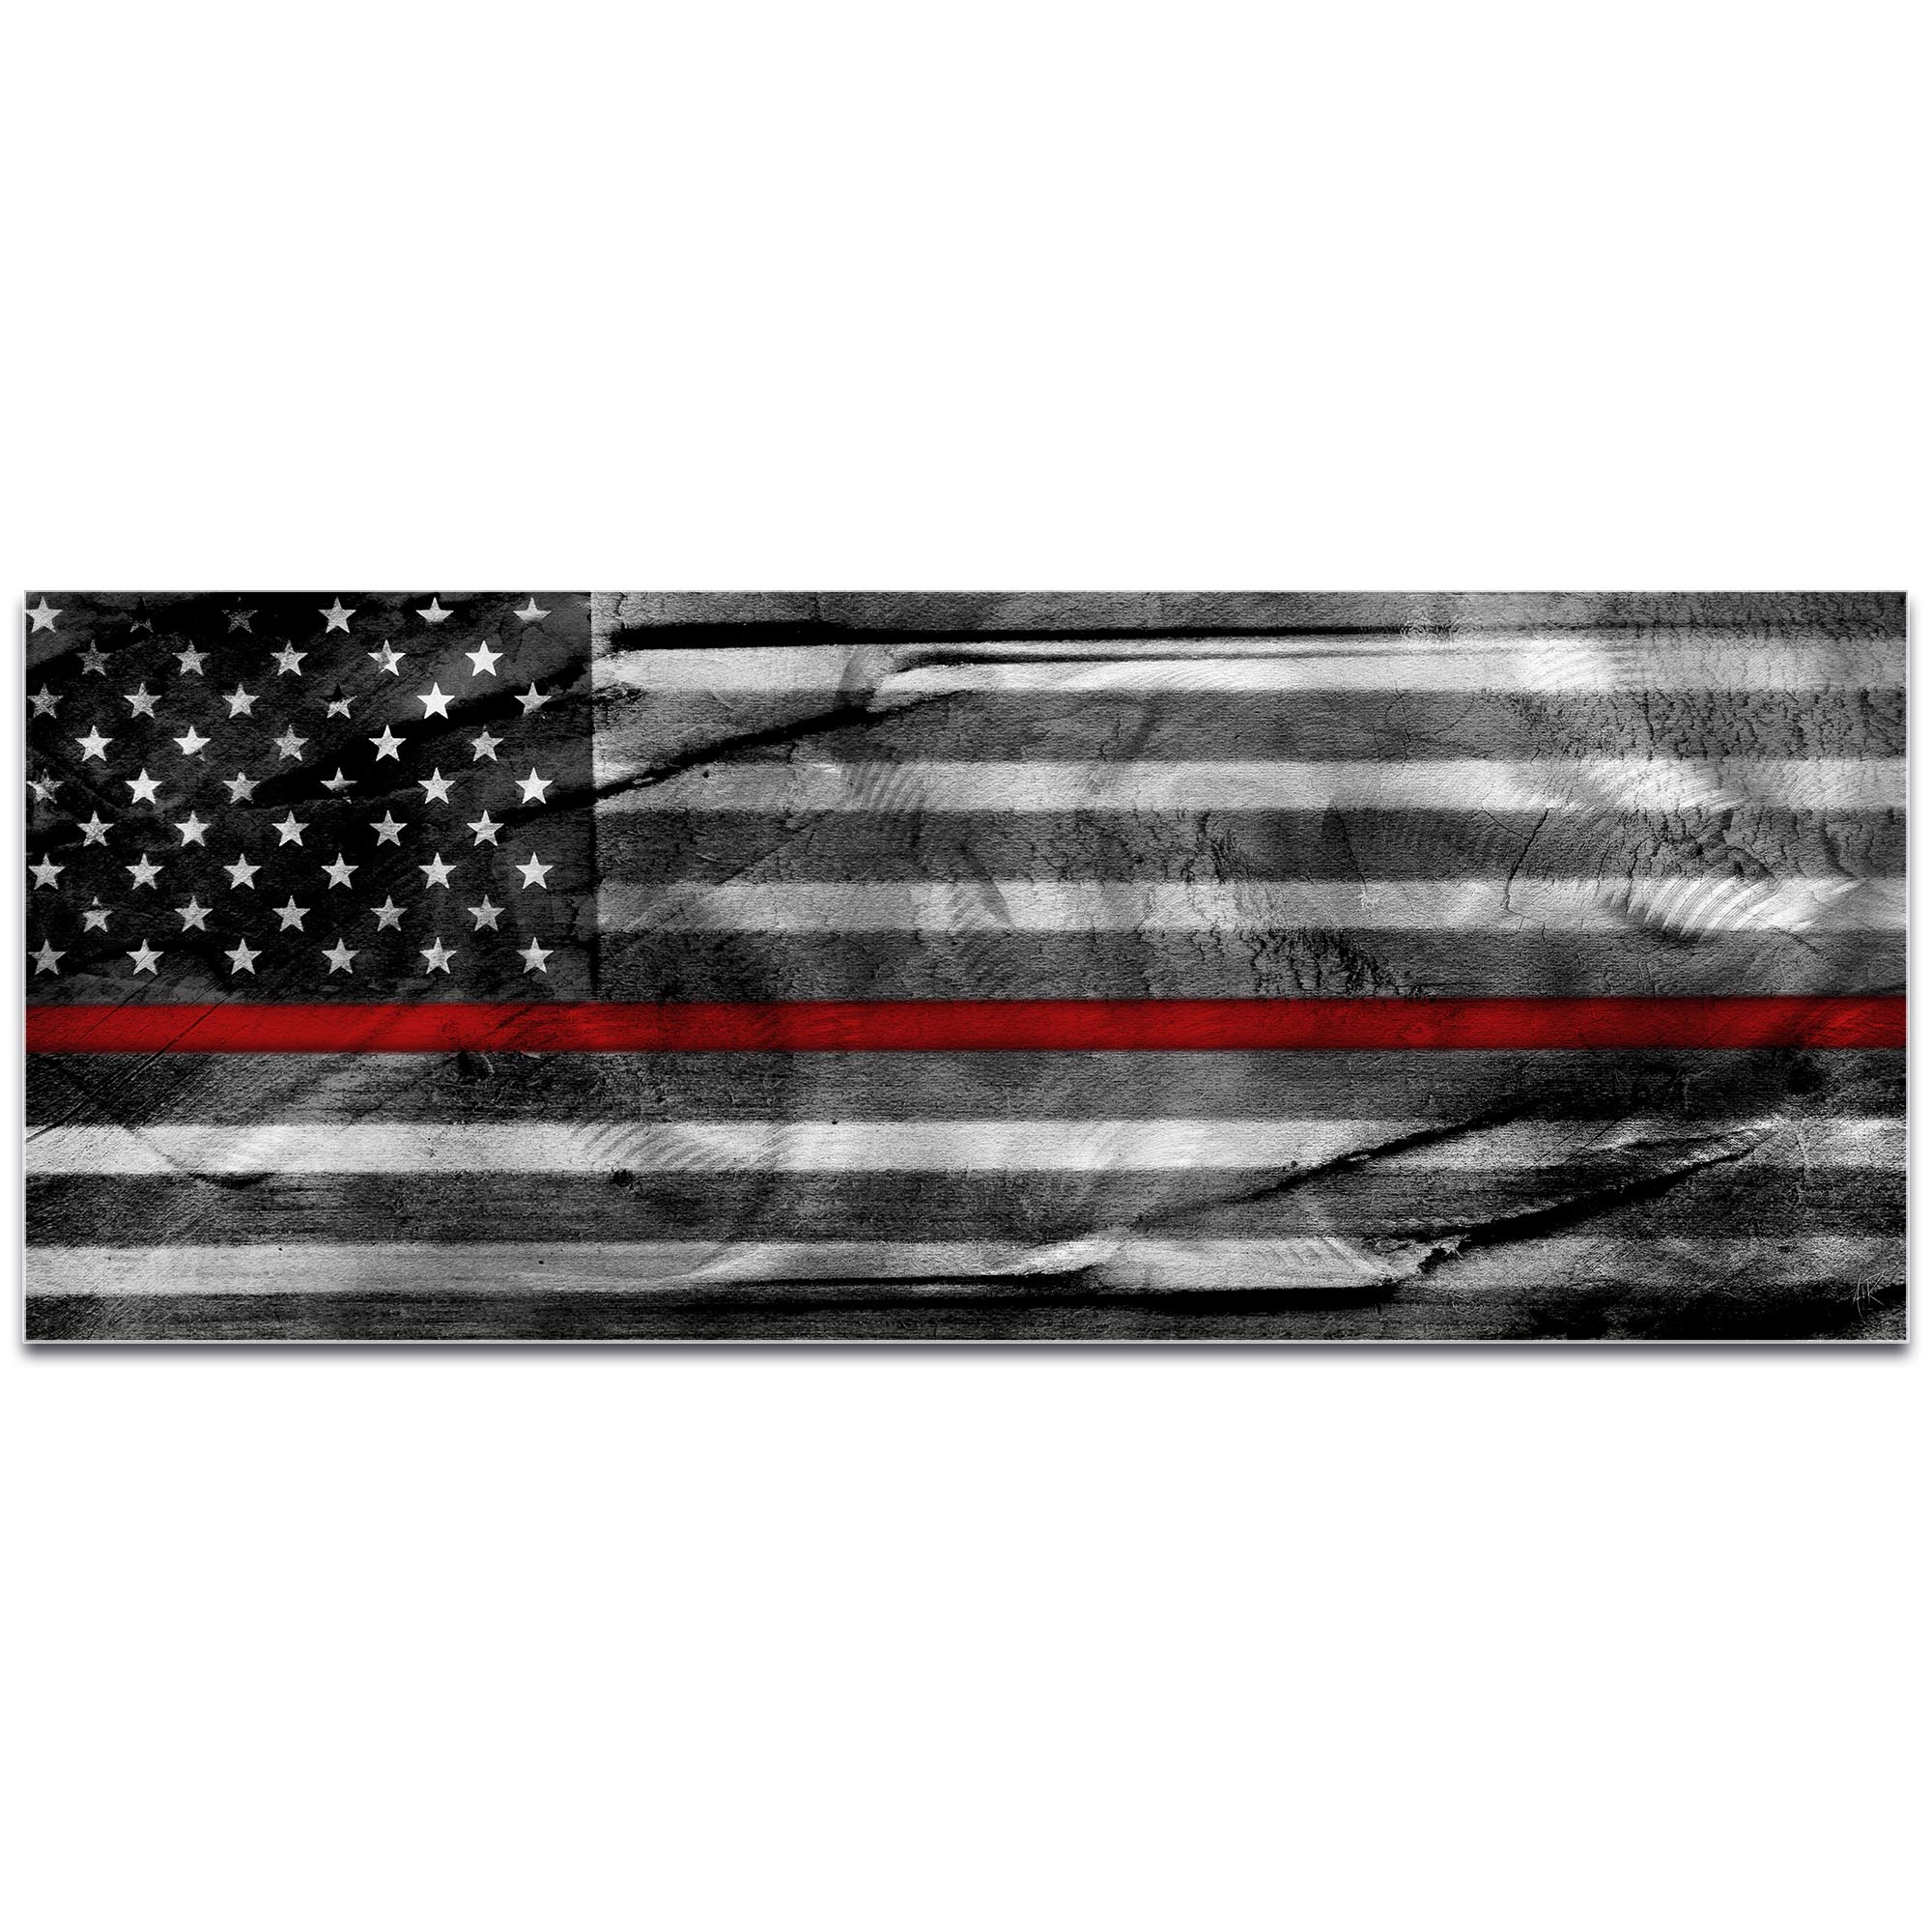 Firemen Flag 'American Glory Firefighter Tribute' - First Responders Art on Metal or Acrylic - Image 2